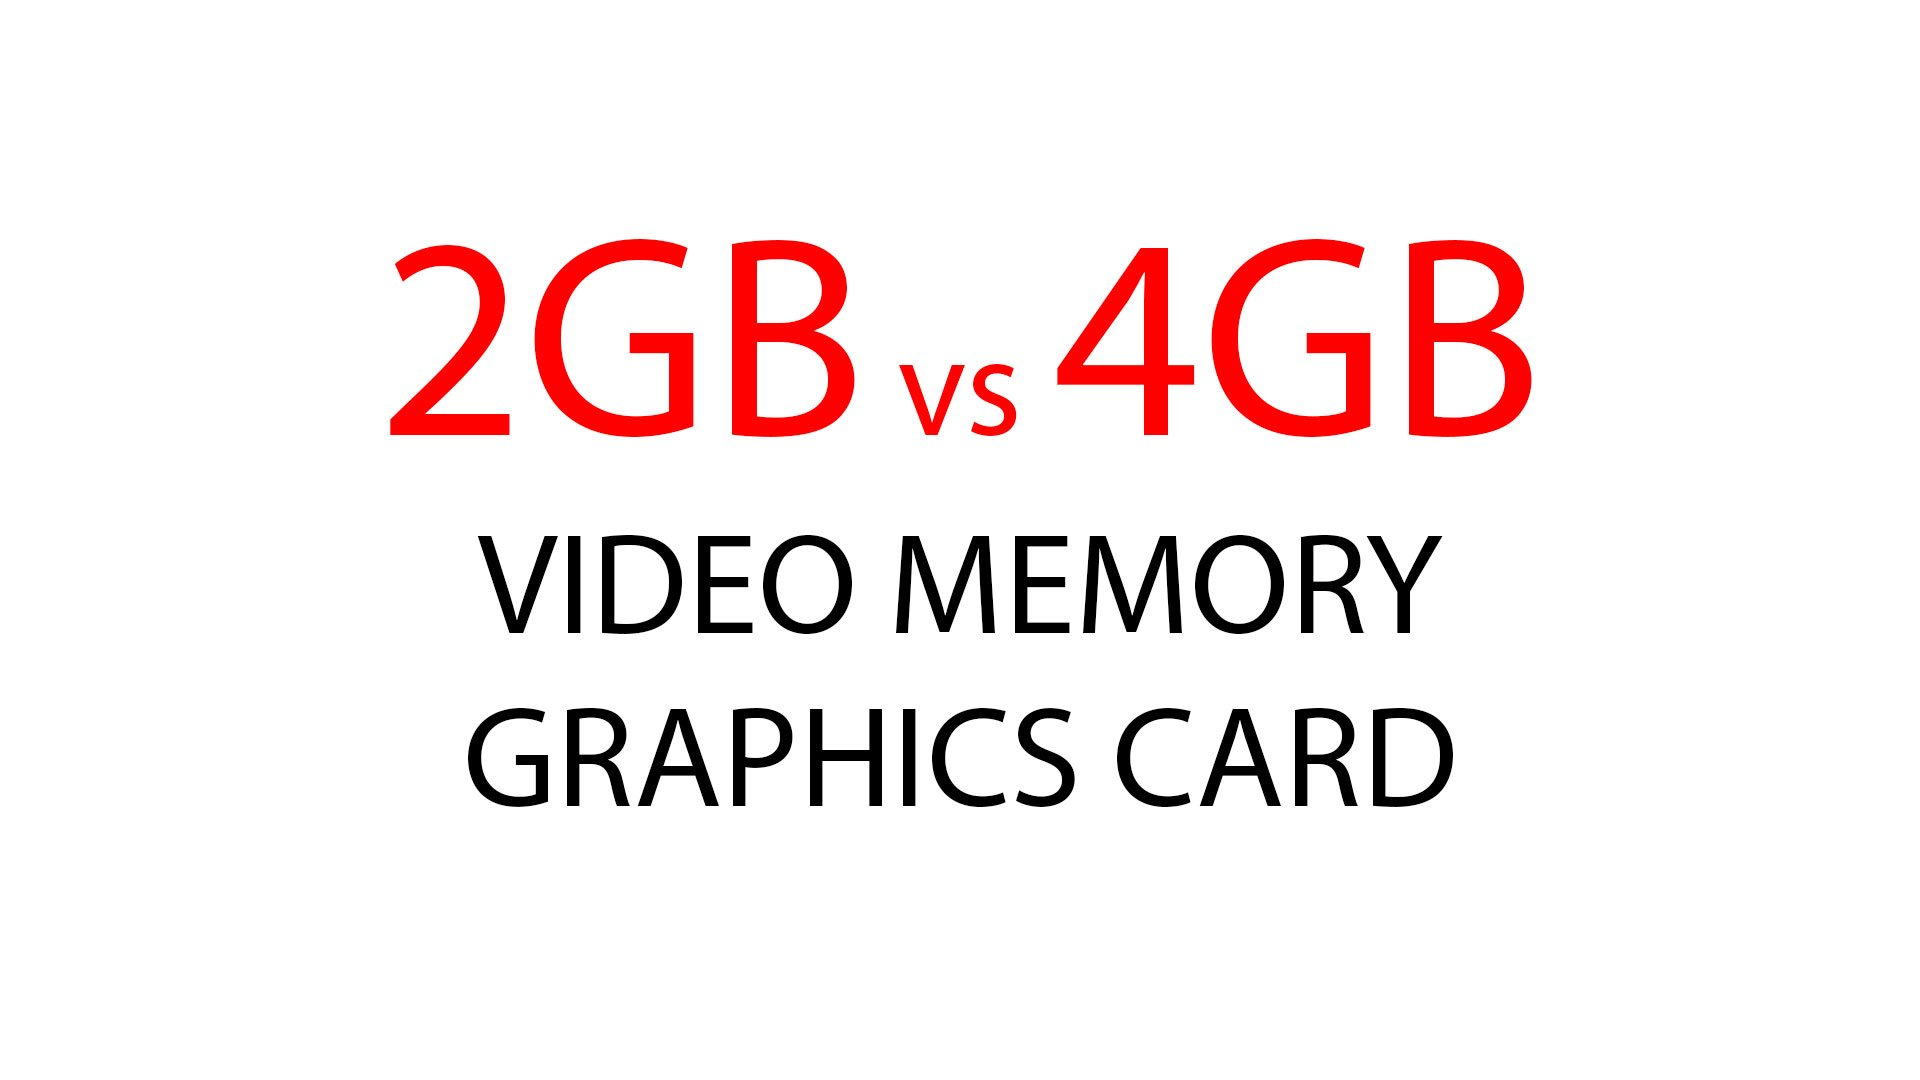 2GB vs 4GB Video Memory Graphics Card Comparison 1